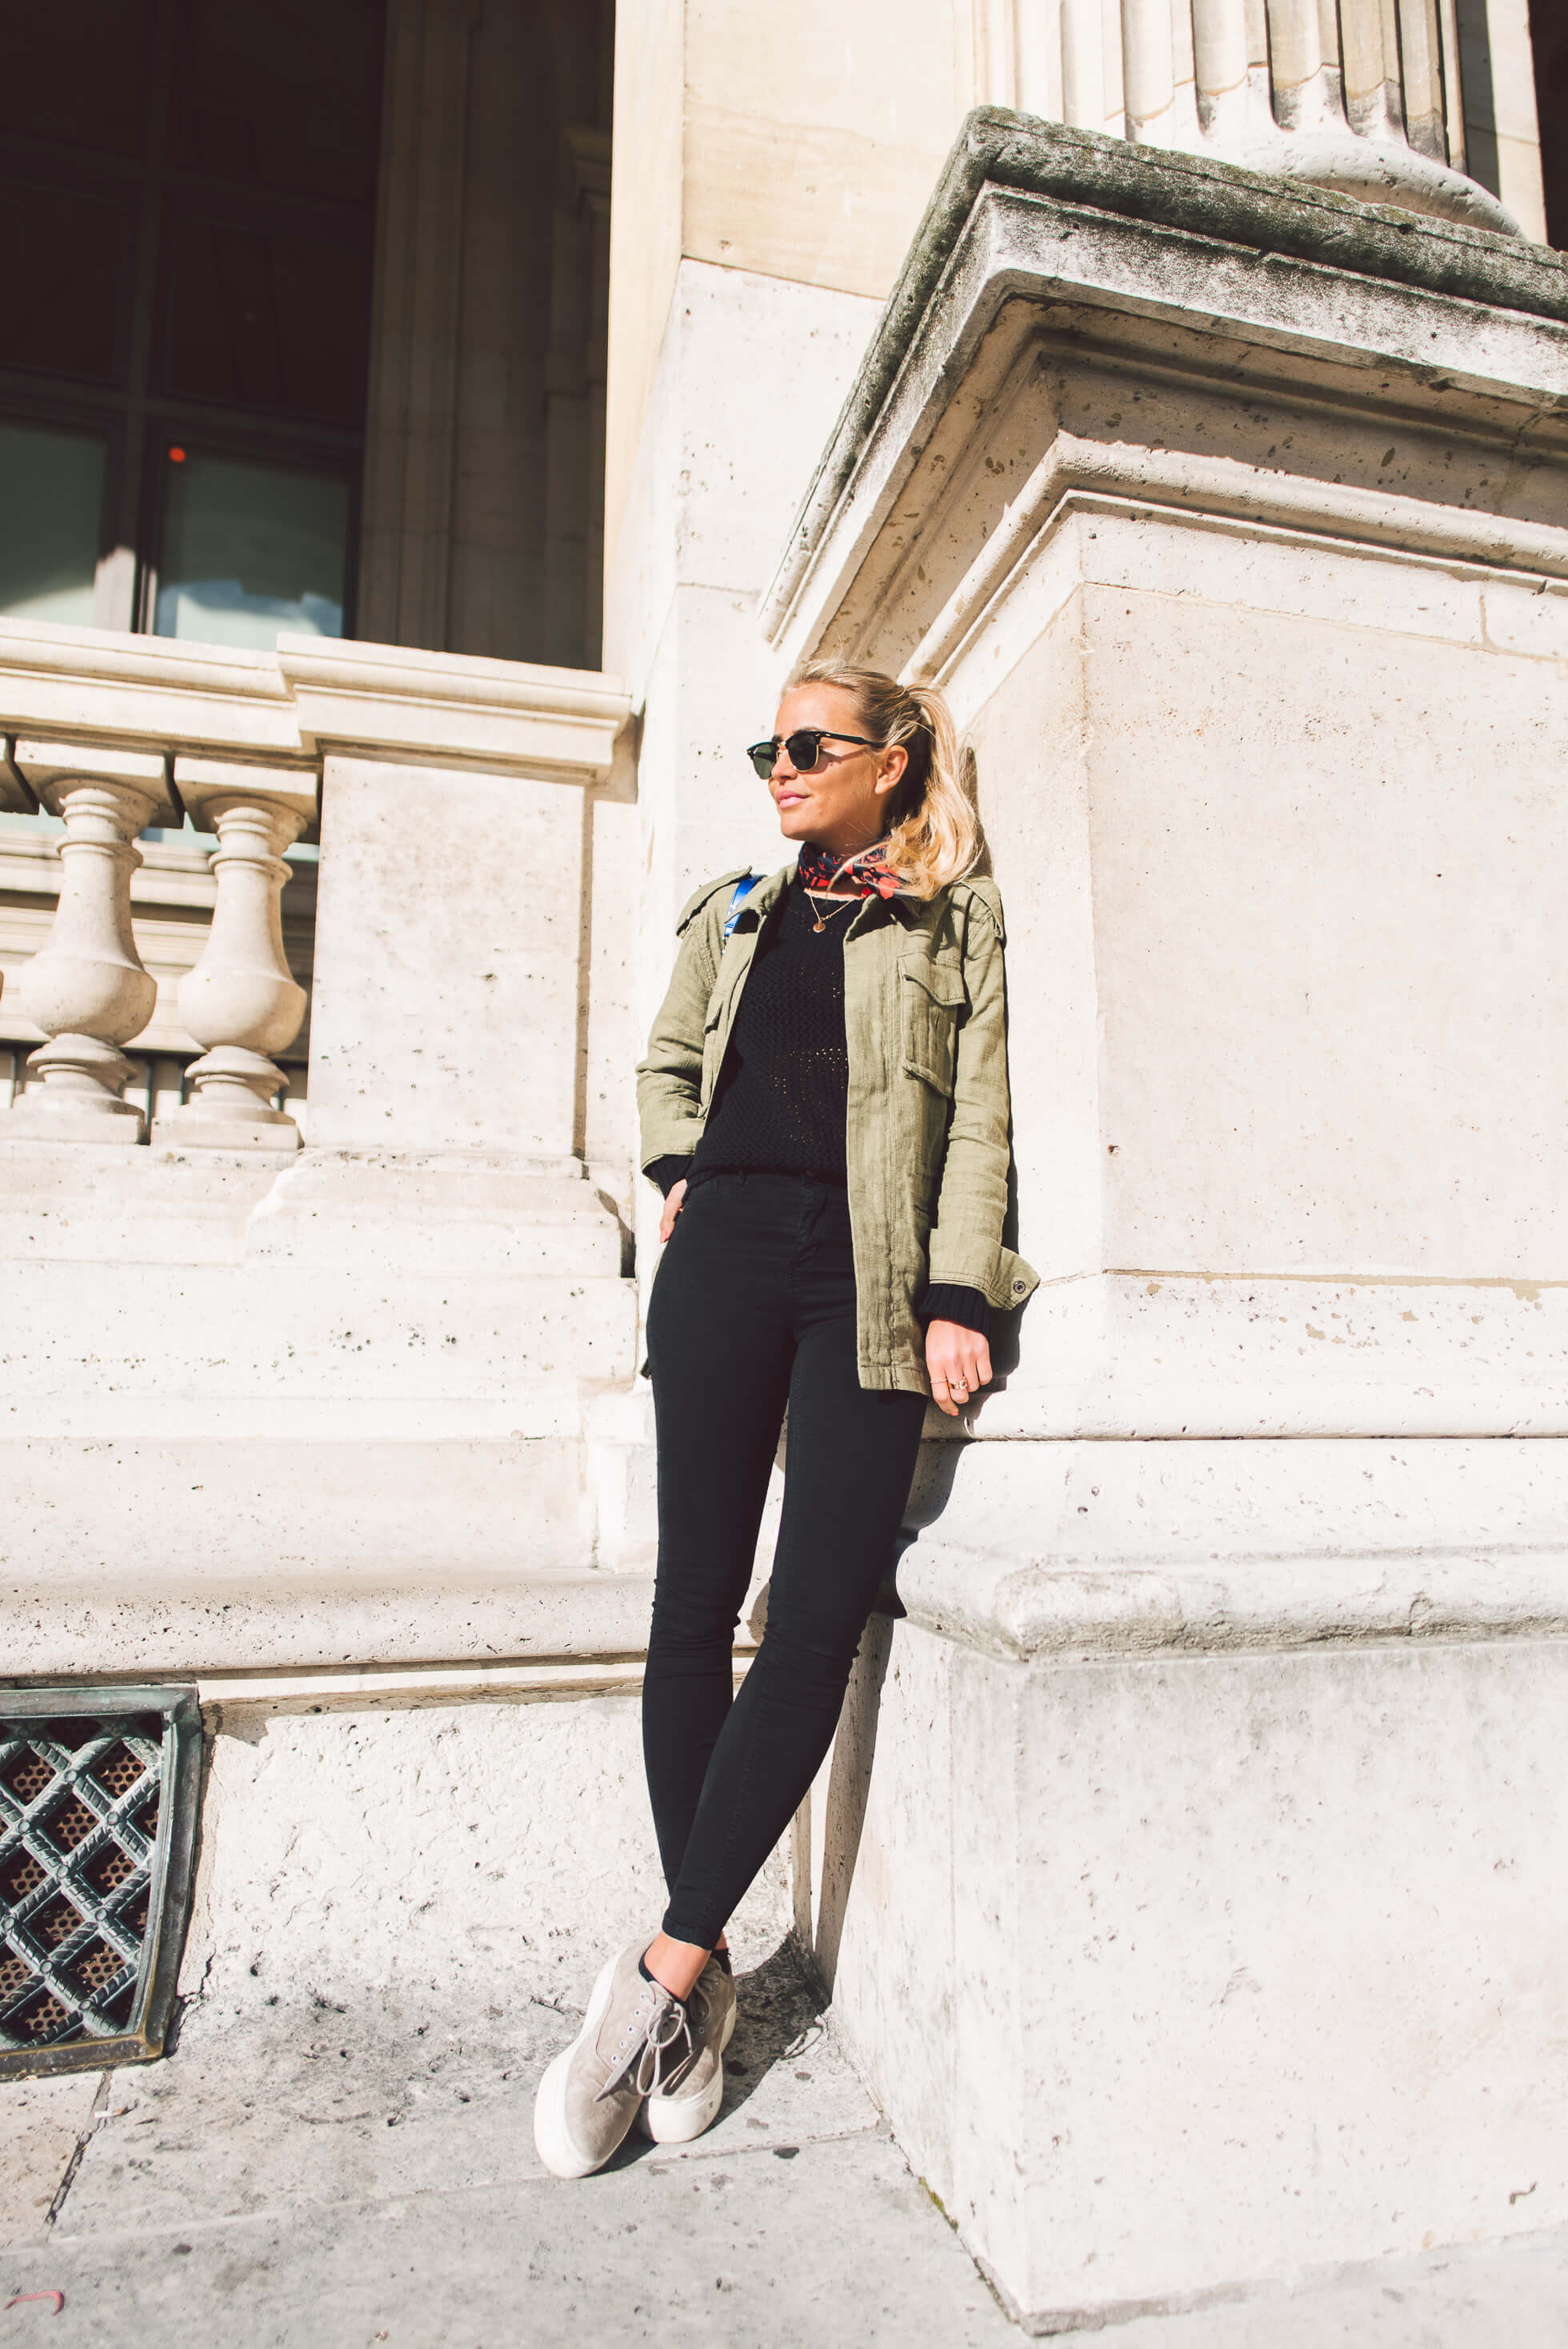 janni-deler-army-jacket-ginaDSC_1851